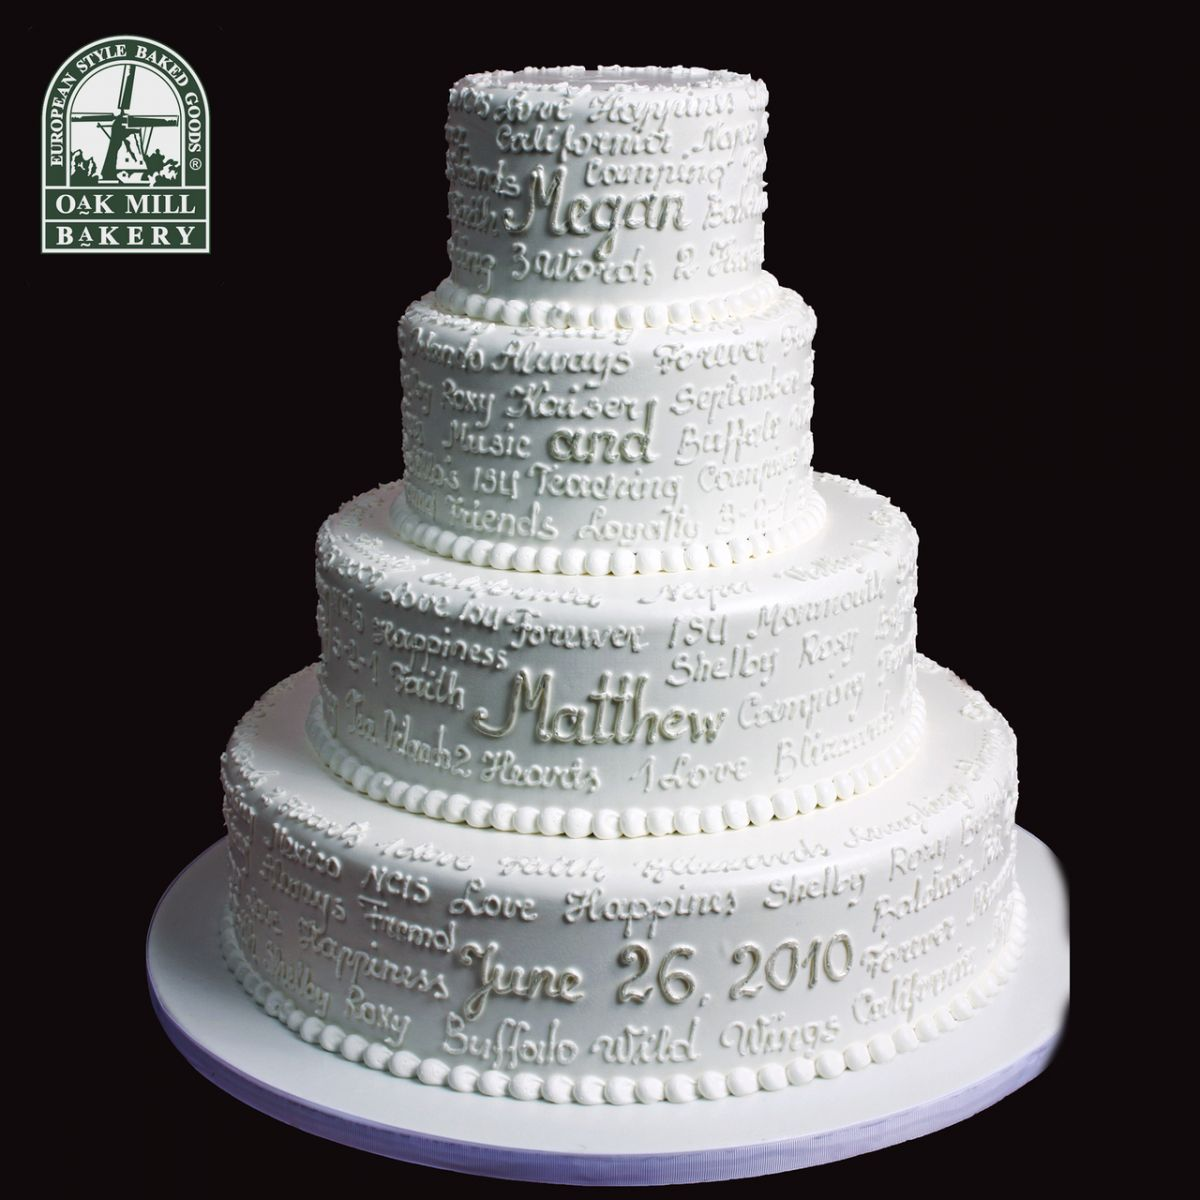 18 wedding cake designs to steal - Retro decor is making a huge comeback dont be left behind ...